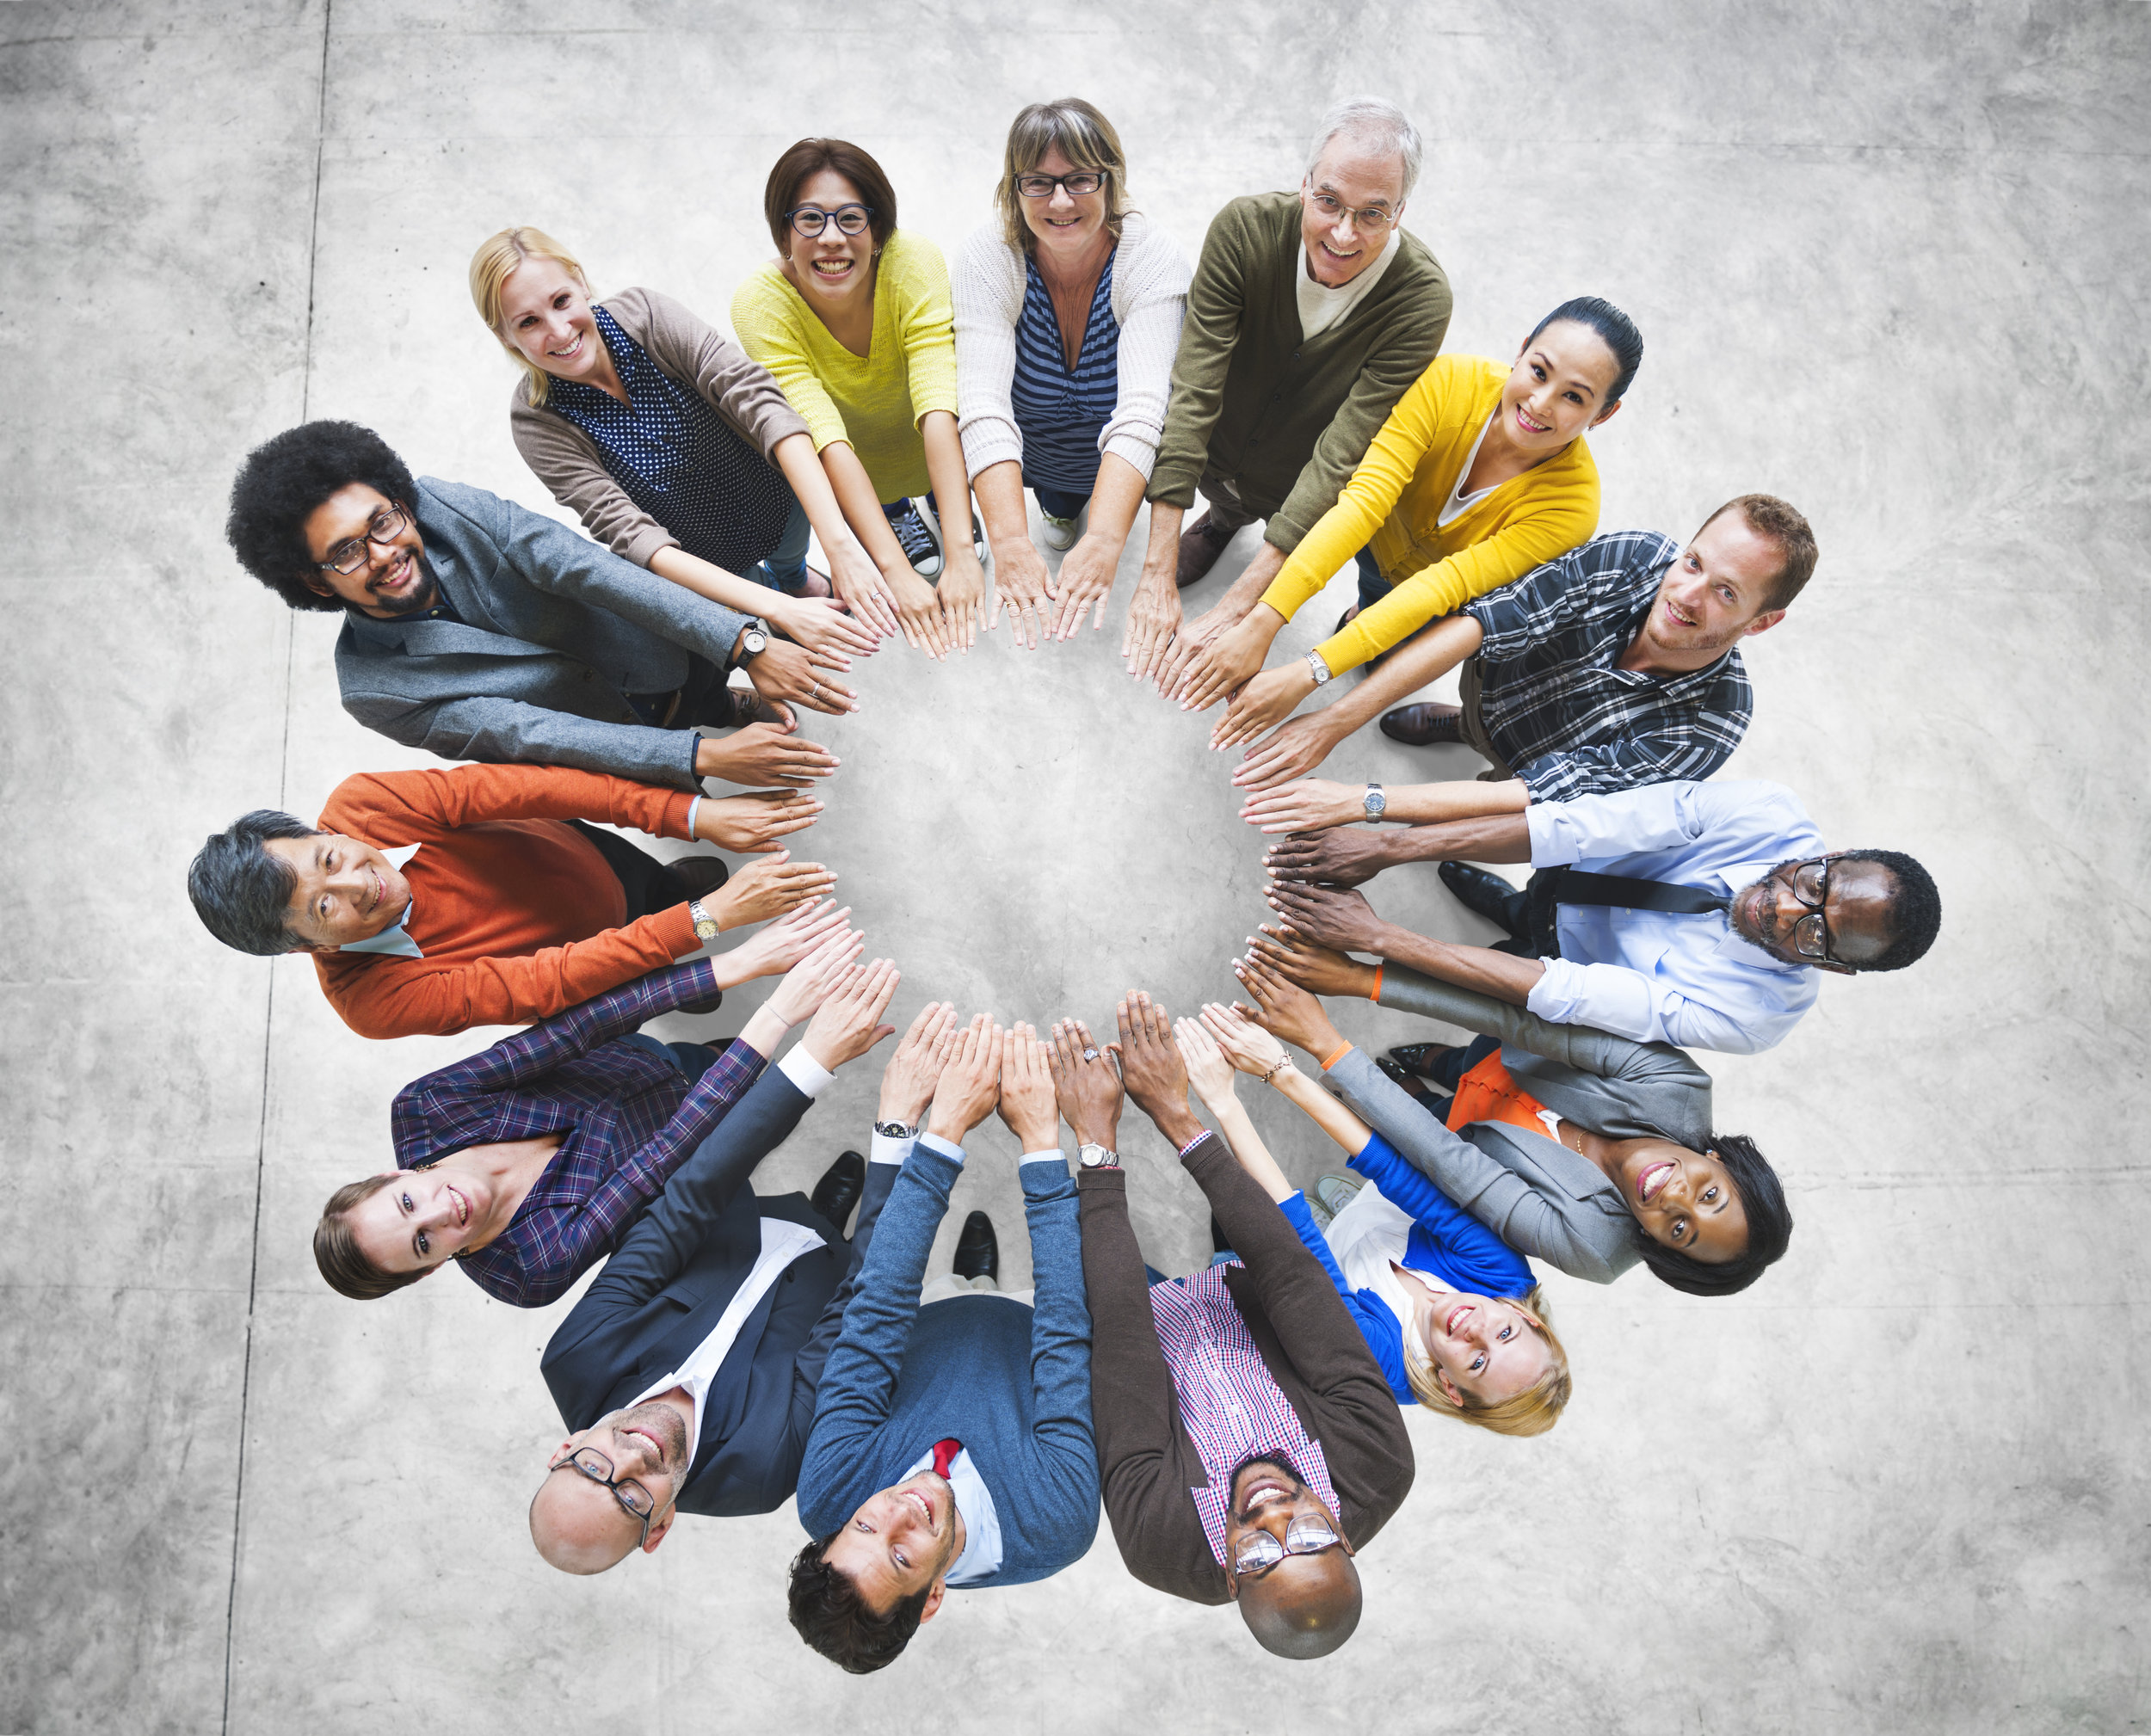 Organizational Support - Creating environments whereemployees thrive